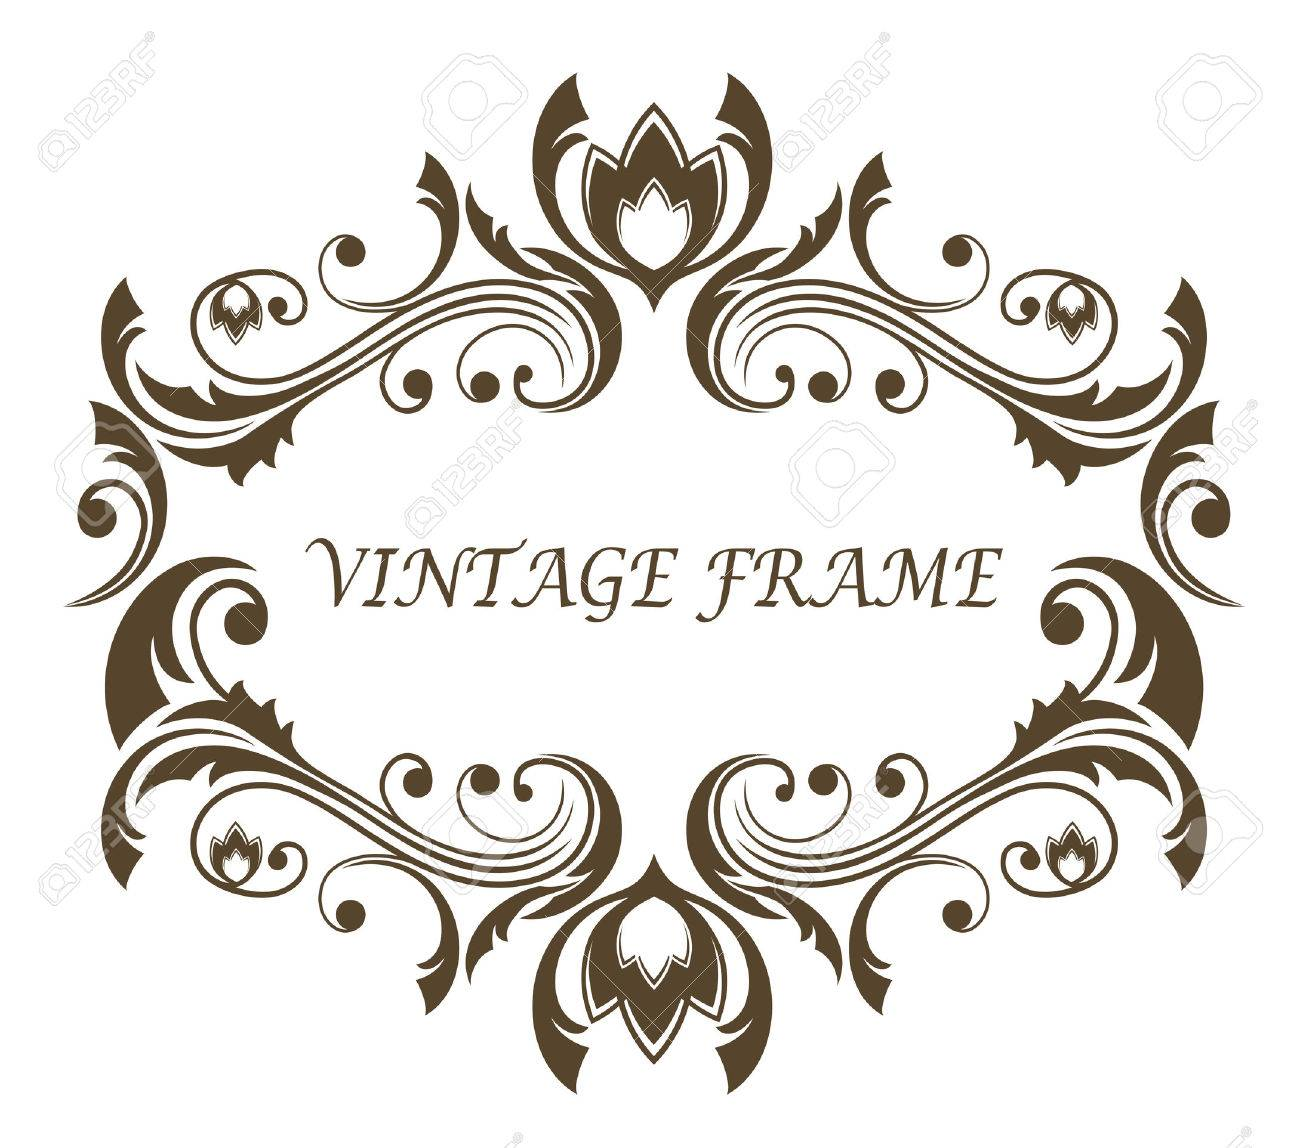 Vintage Floral And Foliate Frame With Symmetrical Scrolling Foliage ...